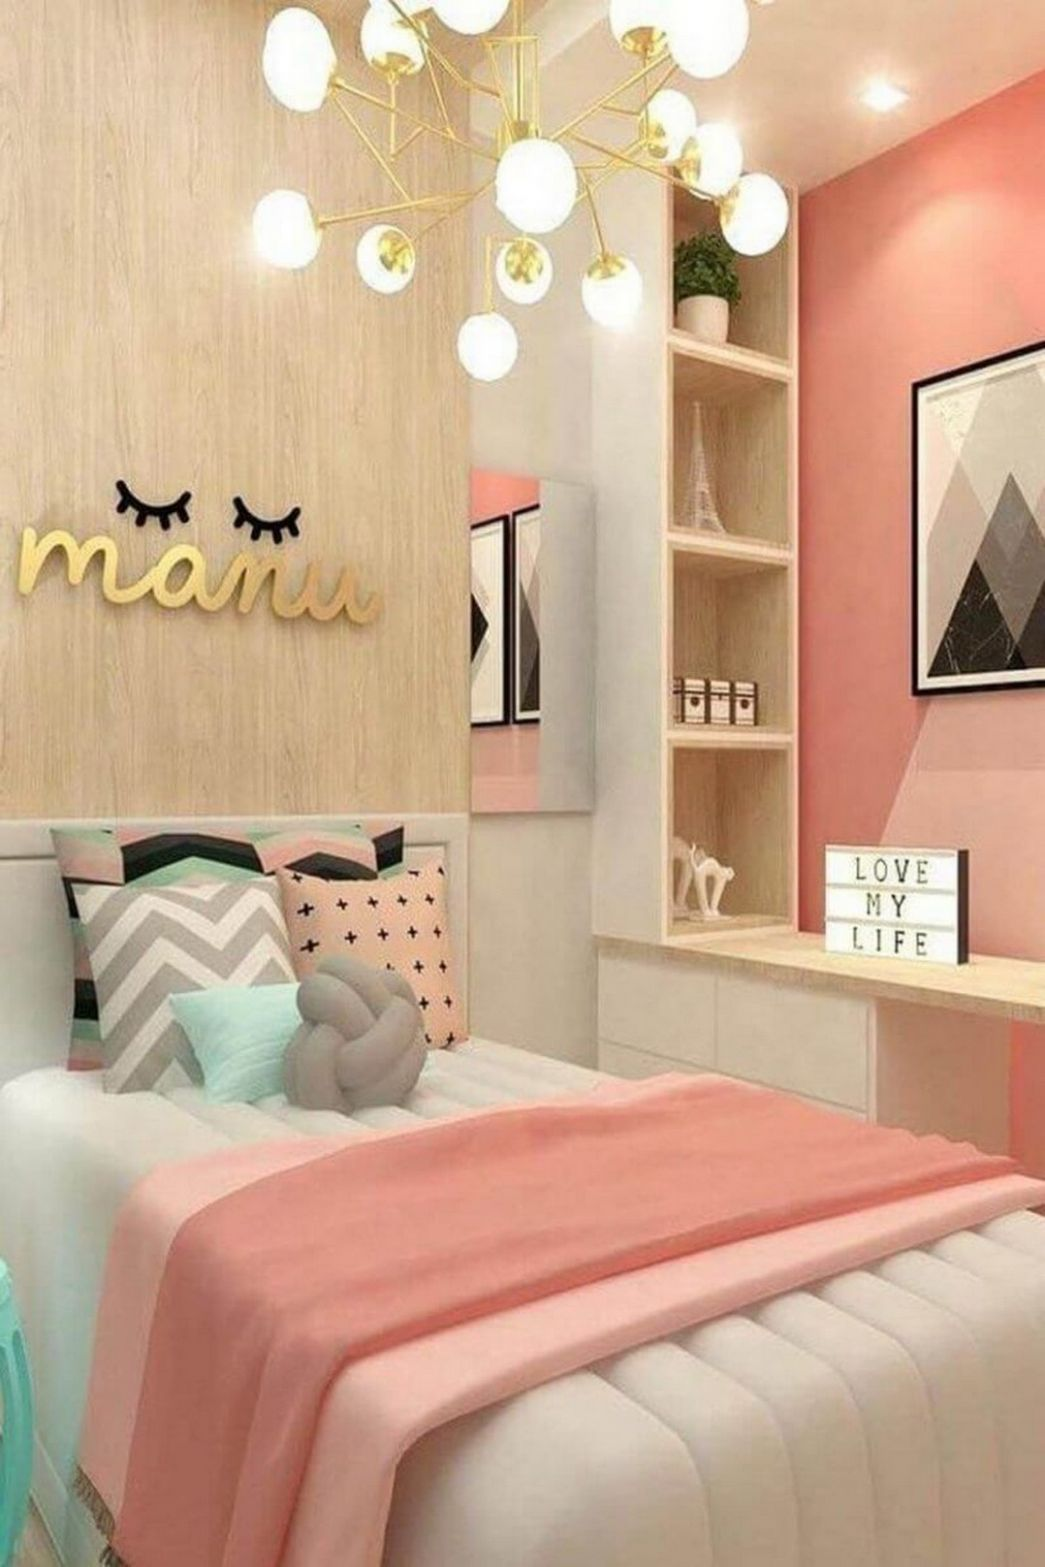 11 Cute Girls Bedroom Ideas For Small Rooms – quickbrain